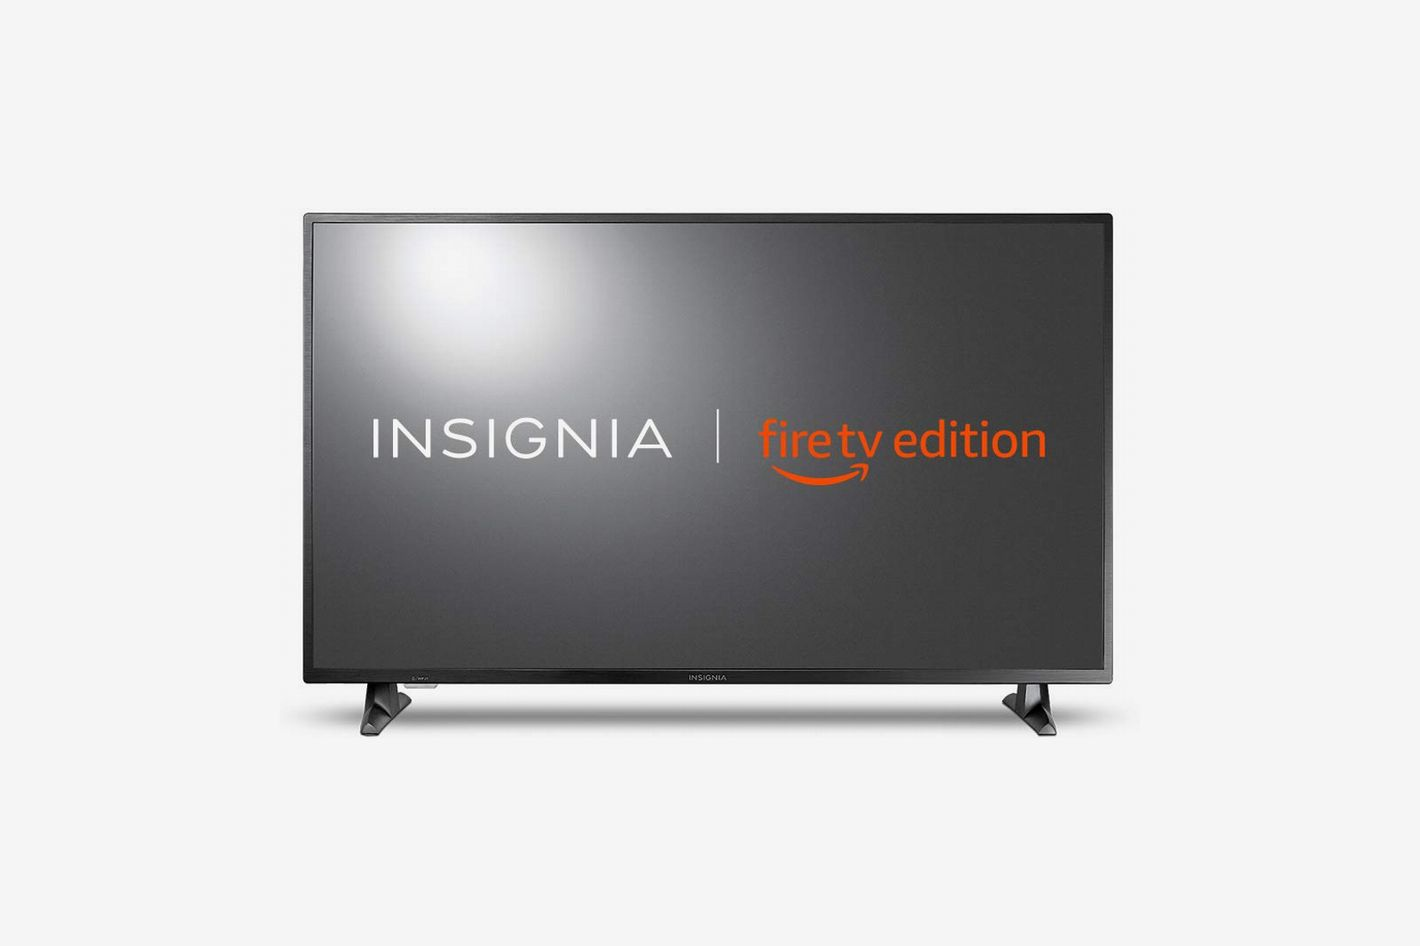 Insignia 50-inch 4K Ultra HD Smart LED TV HDR - Fire TV Edition